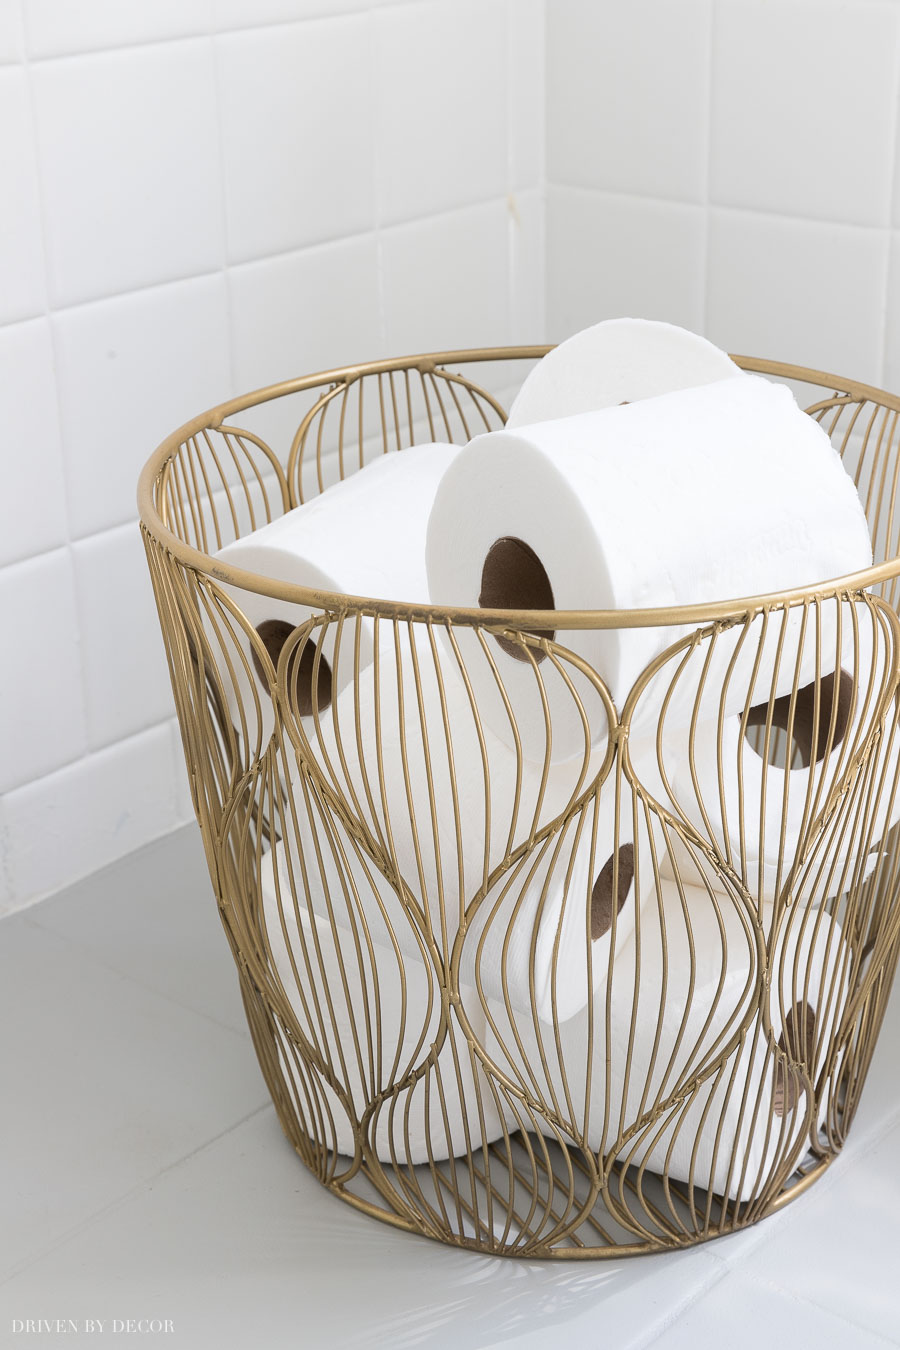 This Small Gold Wire Basket Is Perfect For Holding Extra Rolls Of Toilet Paper In The Bathroom 299841287691190657 Gold Bathroom Wire Baskets Gold Wire Basket